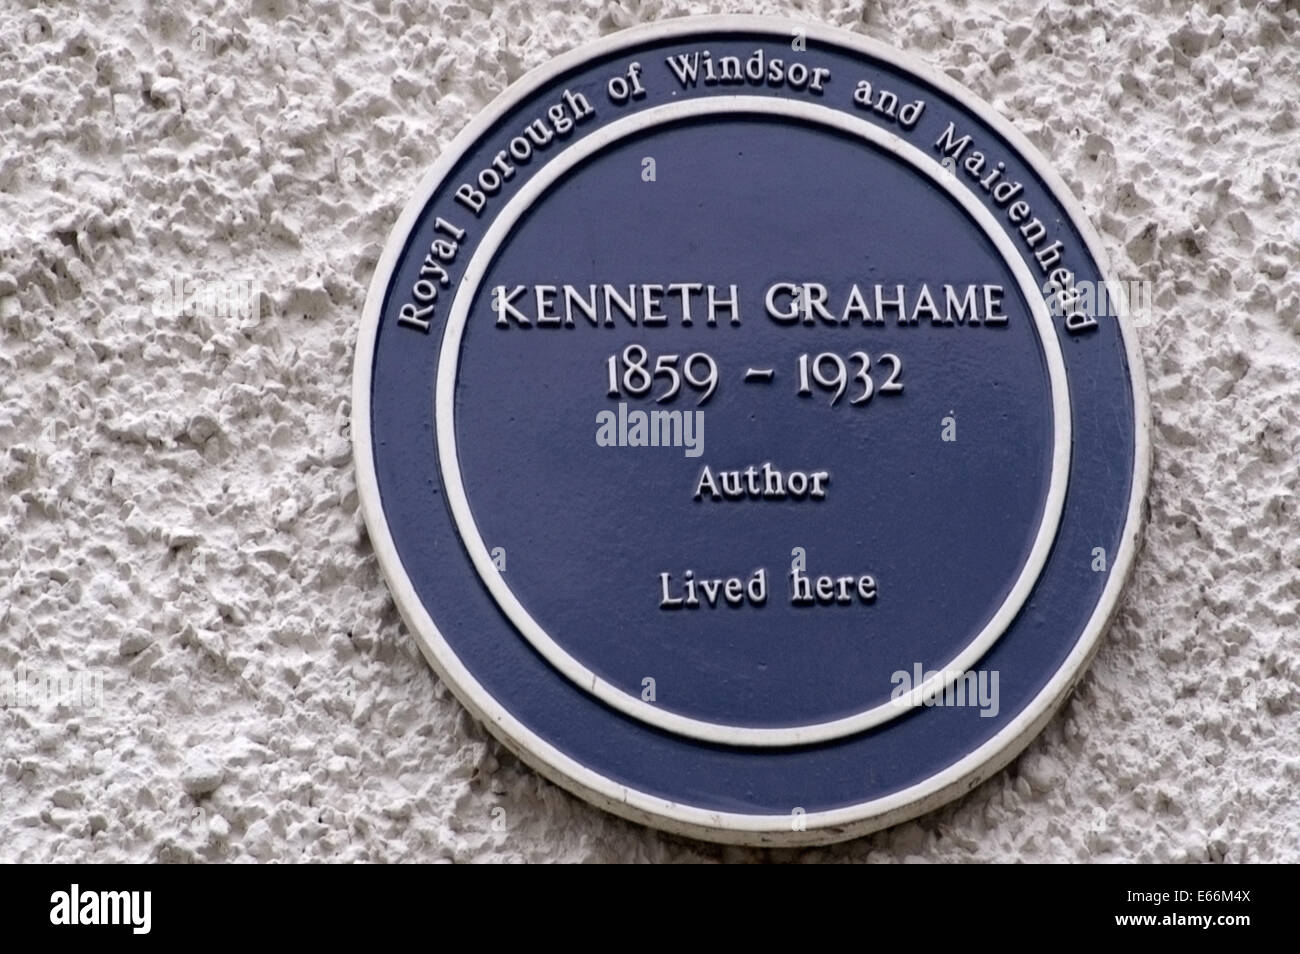 Wind in the willows ornaments - Author Of Wind In The Willows Kenneth Grahame S Blue Plaque Memorial At Cookham Dene